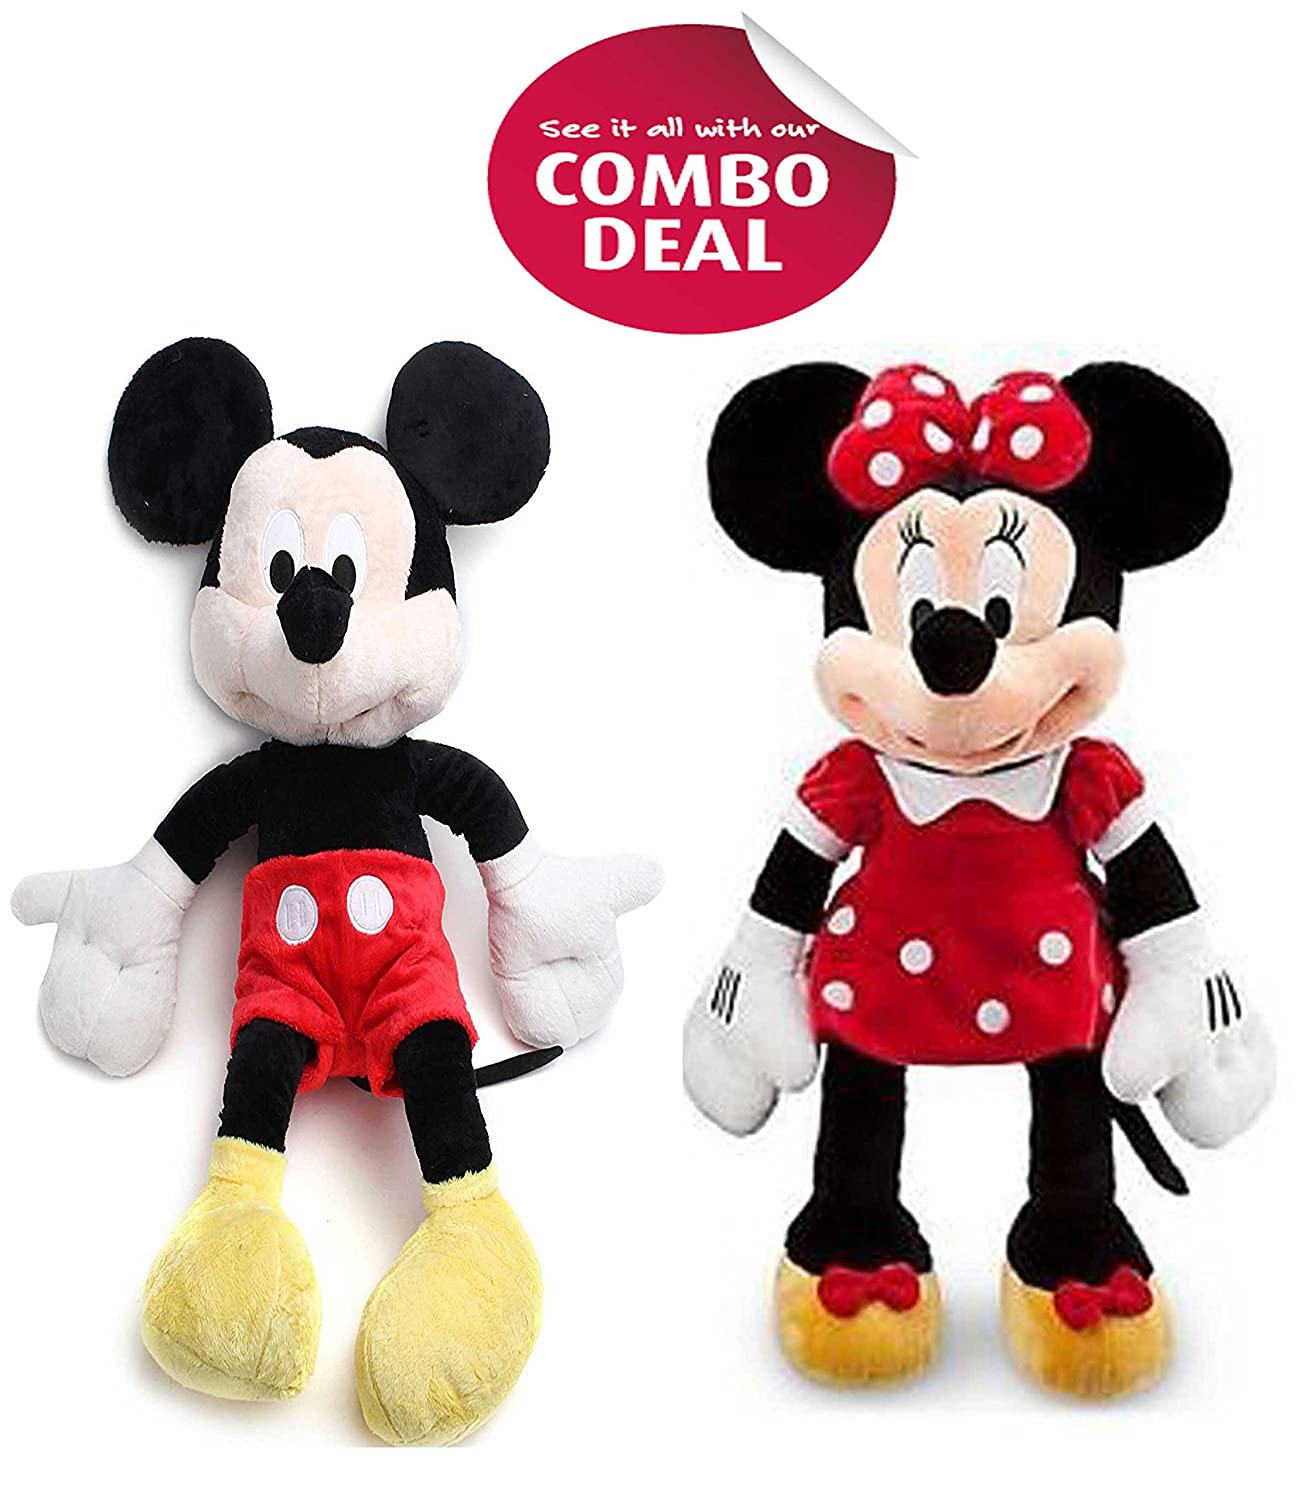 36f616120d6 Buy cips Mickey Mouse Minnie Mouse Soft Toy Teddy Bear(12-inch 30cm)   Online at Low Prices in India - Amazon.in